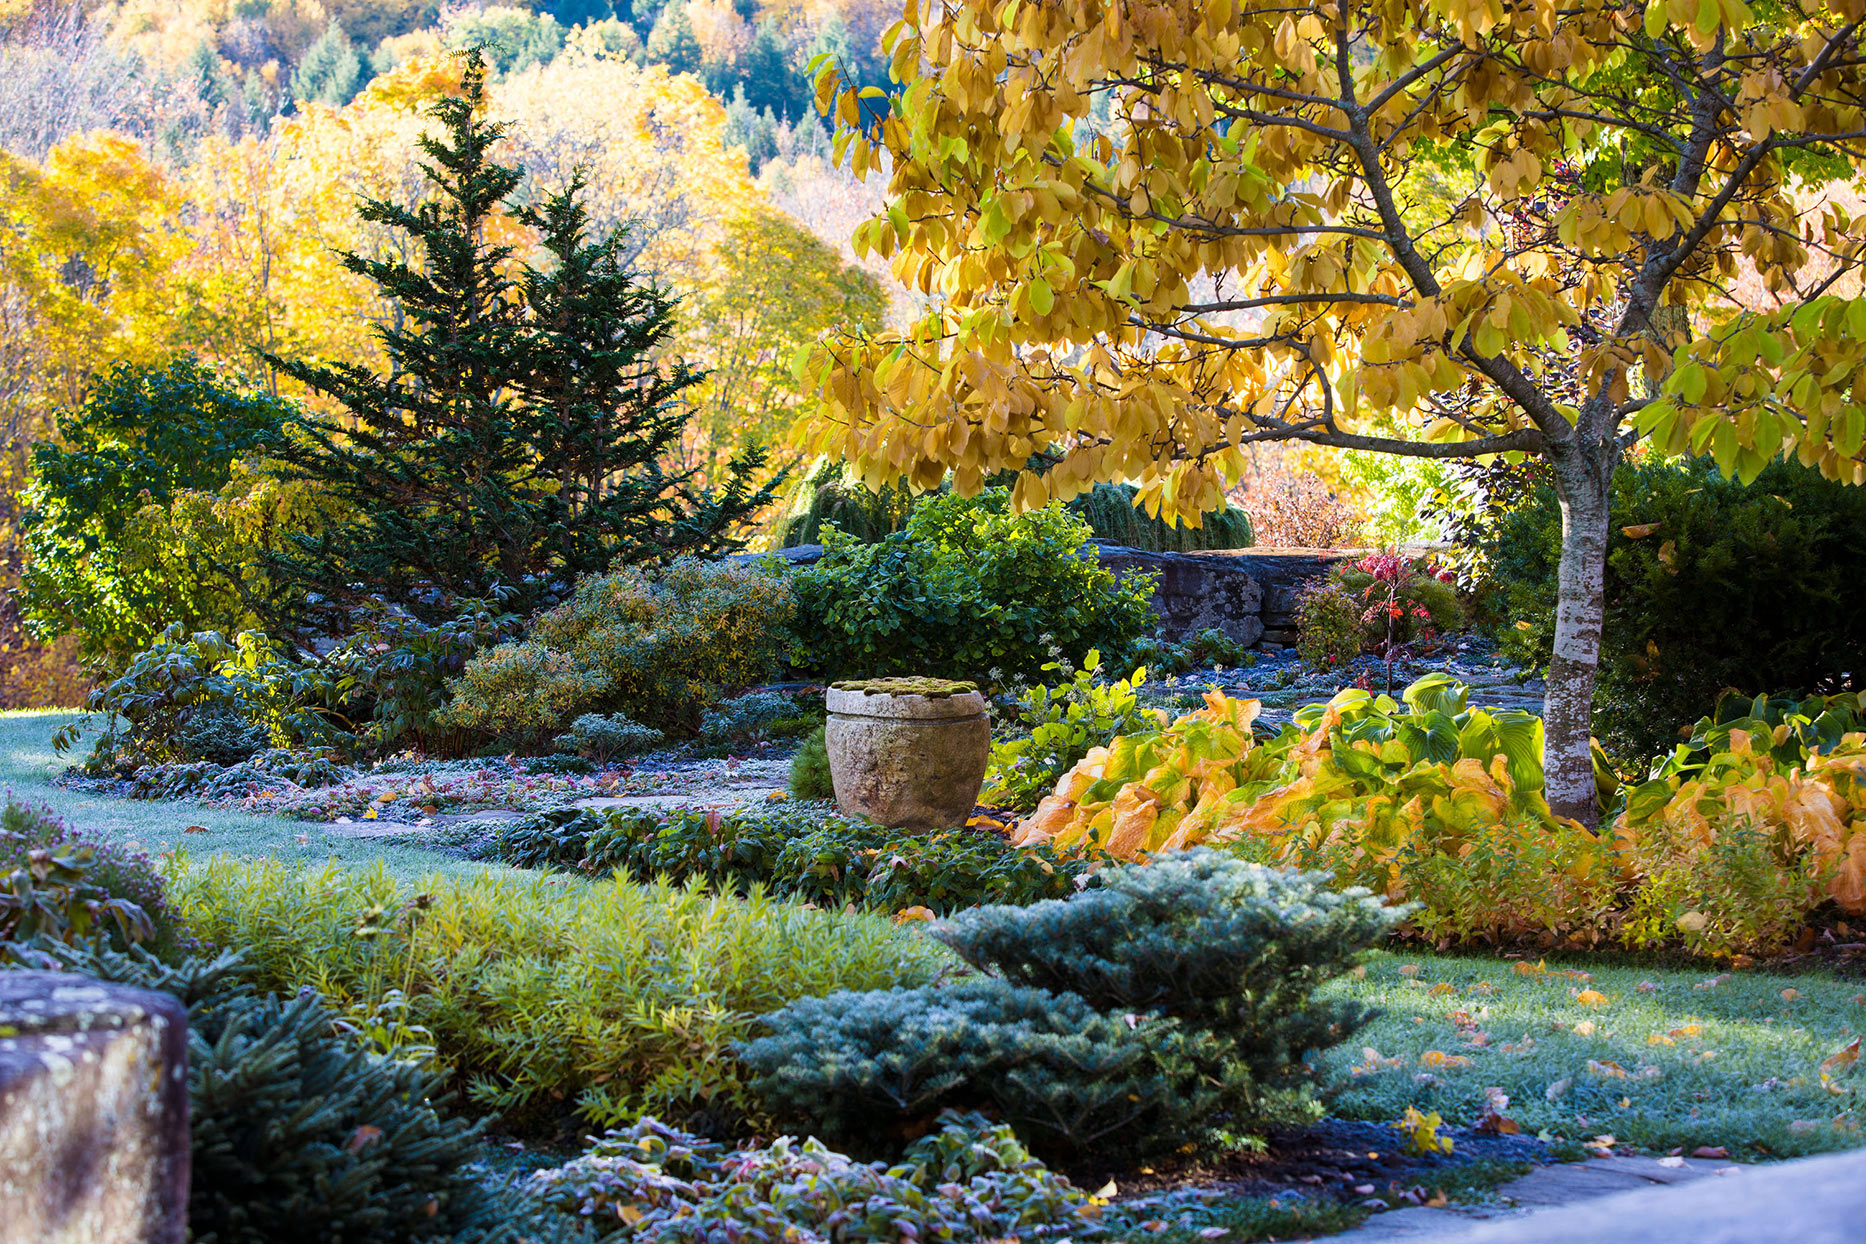 variety of lush perennials growing in garden during fall